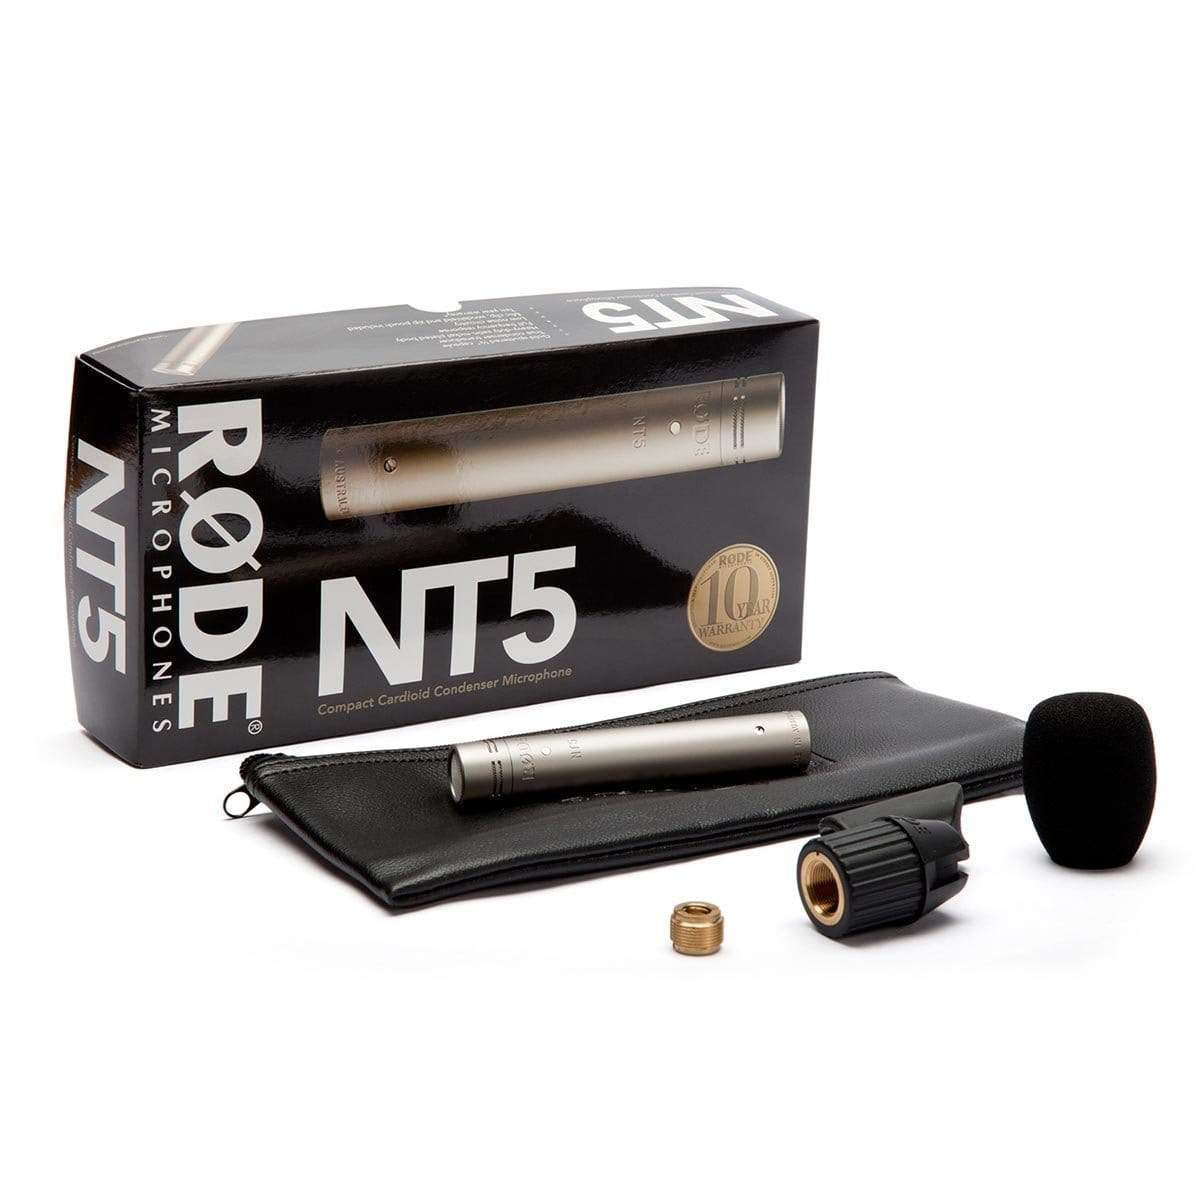 Rode NT5 Compact Condenser Microphone